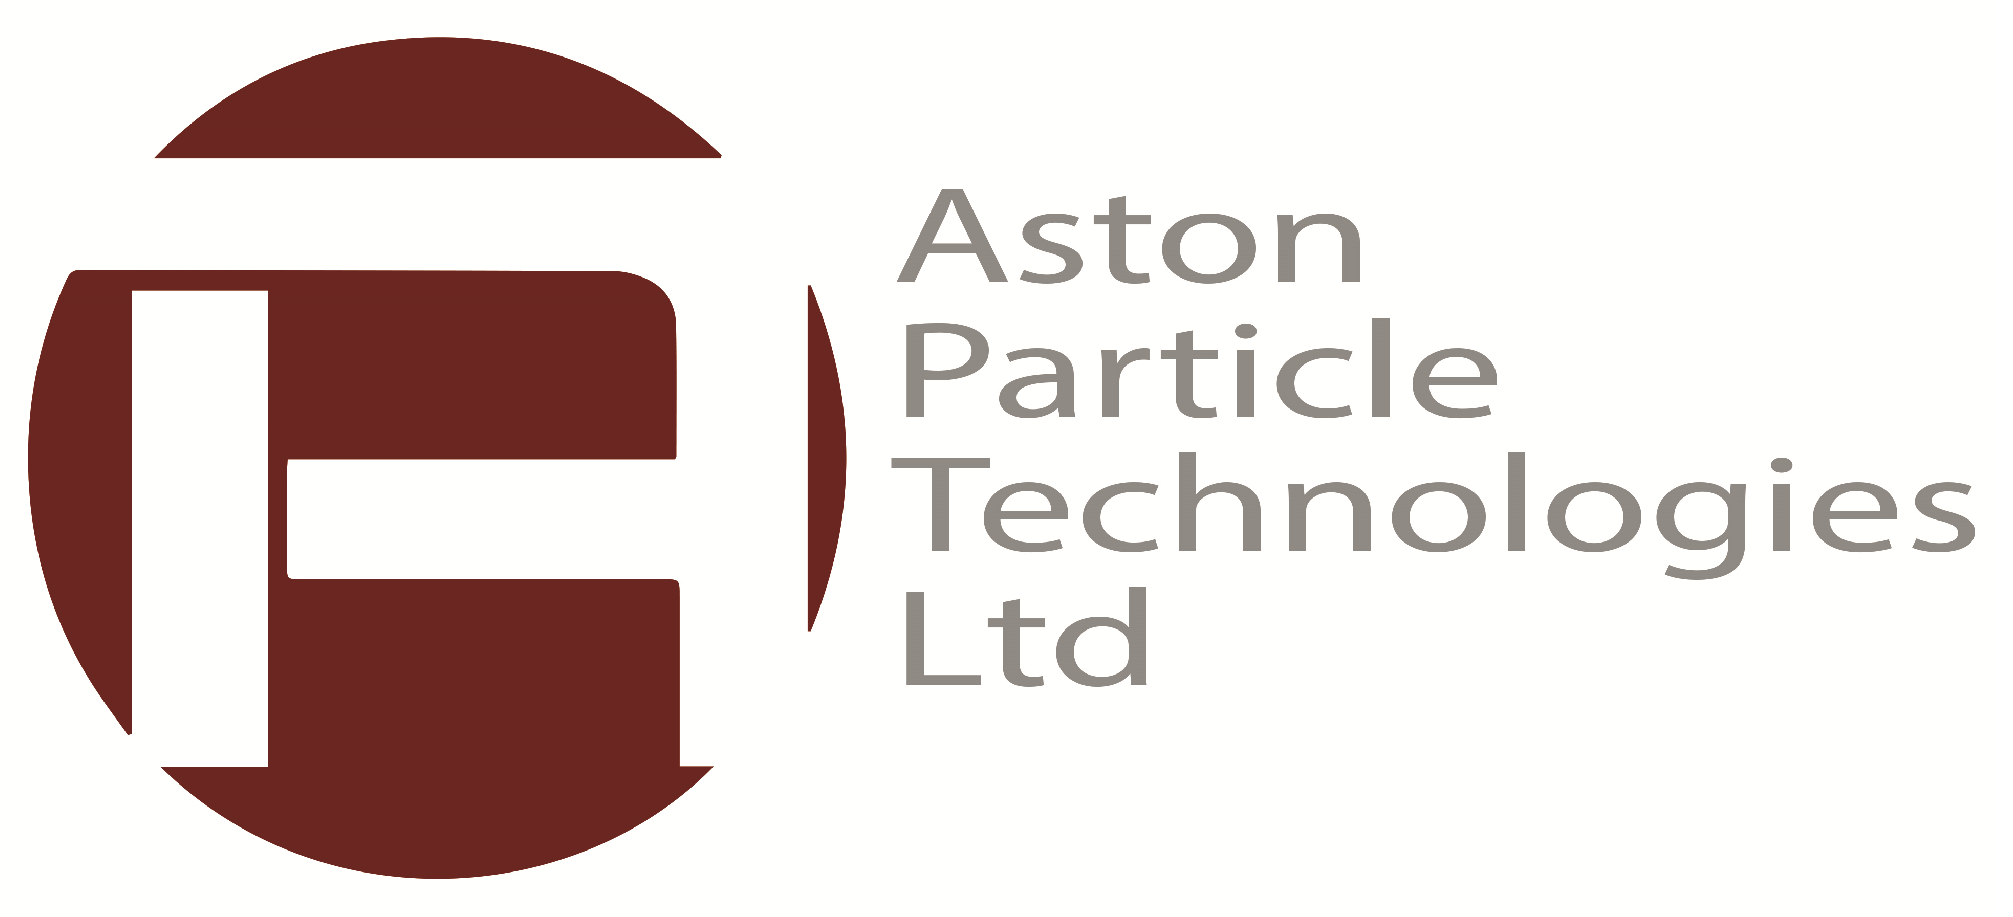 http://www.astonparticletechnologies.com/